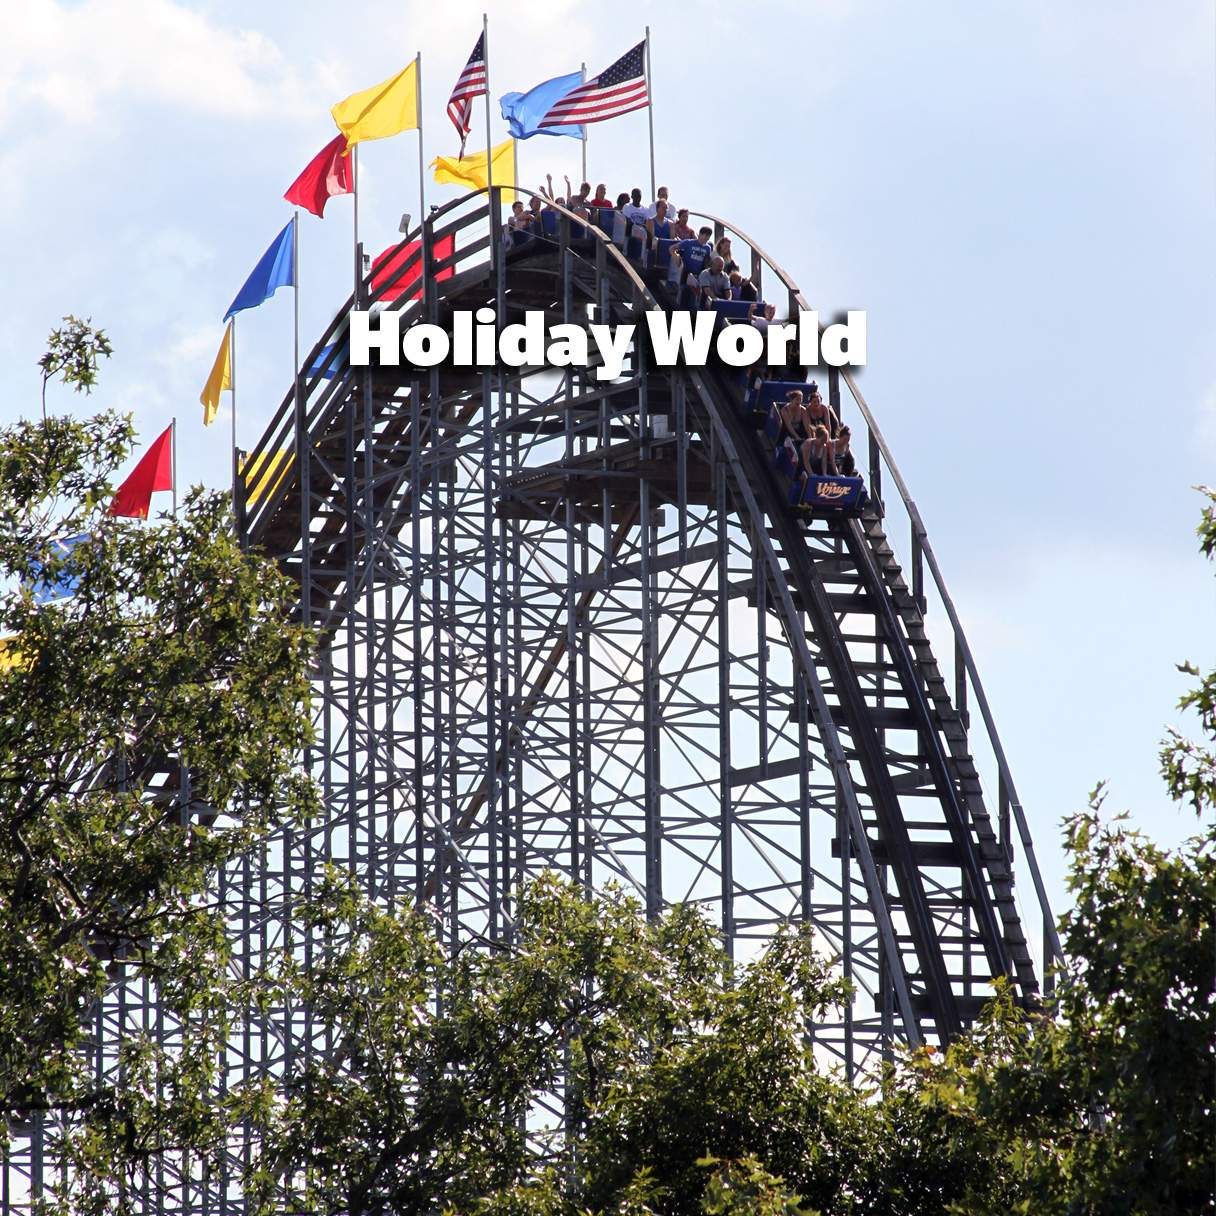 HoliBlog posts about Holiday World